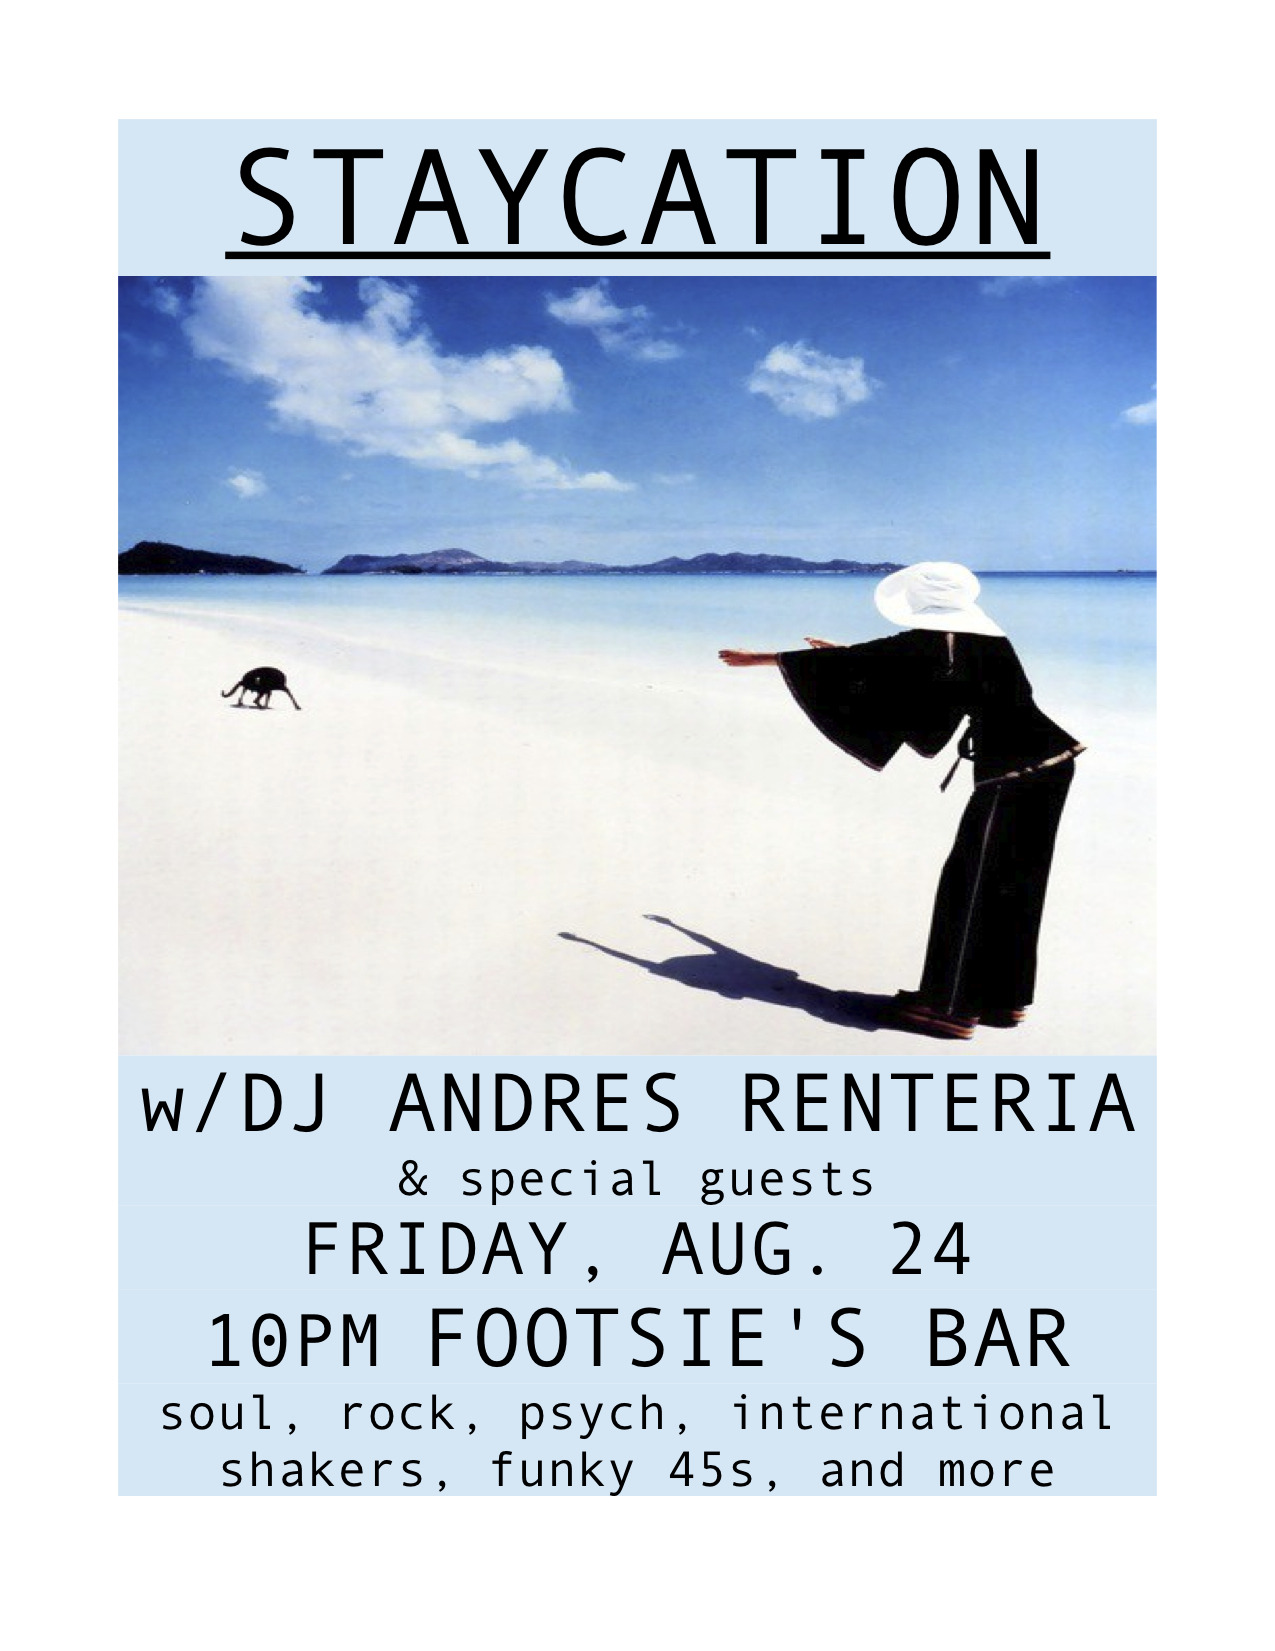 STAYCATION this Friday, August 24 at Footsie's Bar….soul, rock, psych, international shakers, funky 45s and more!!!  With me, DJ Andres Renteria!!!